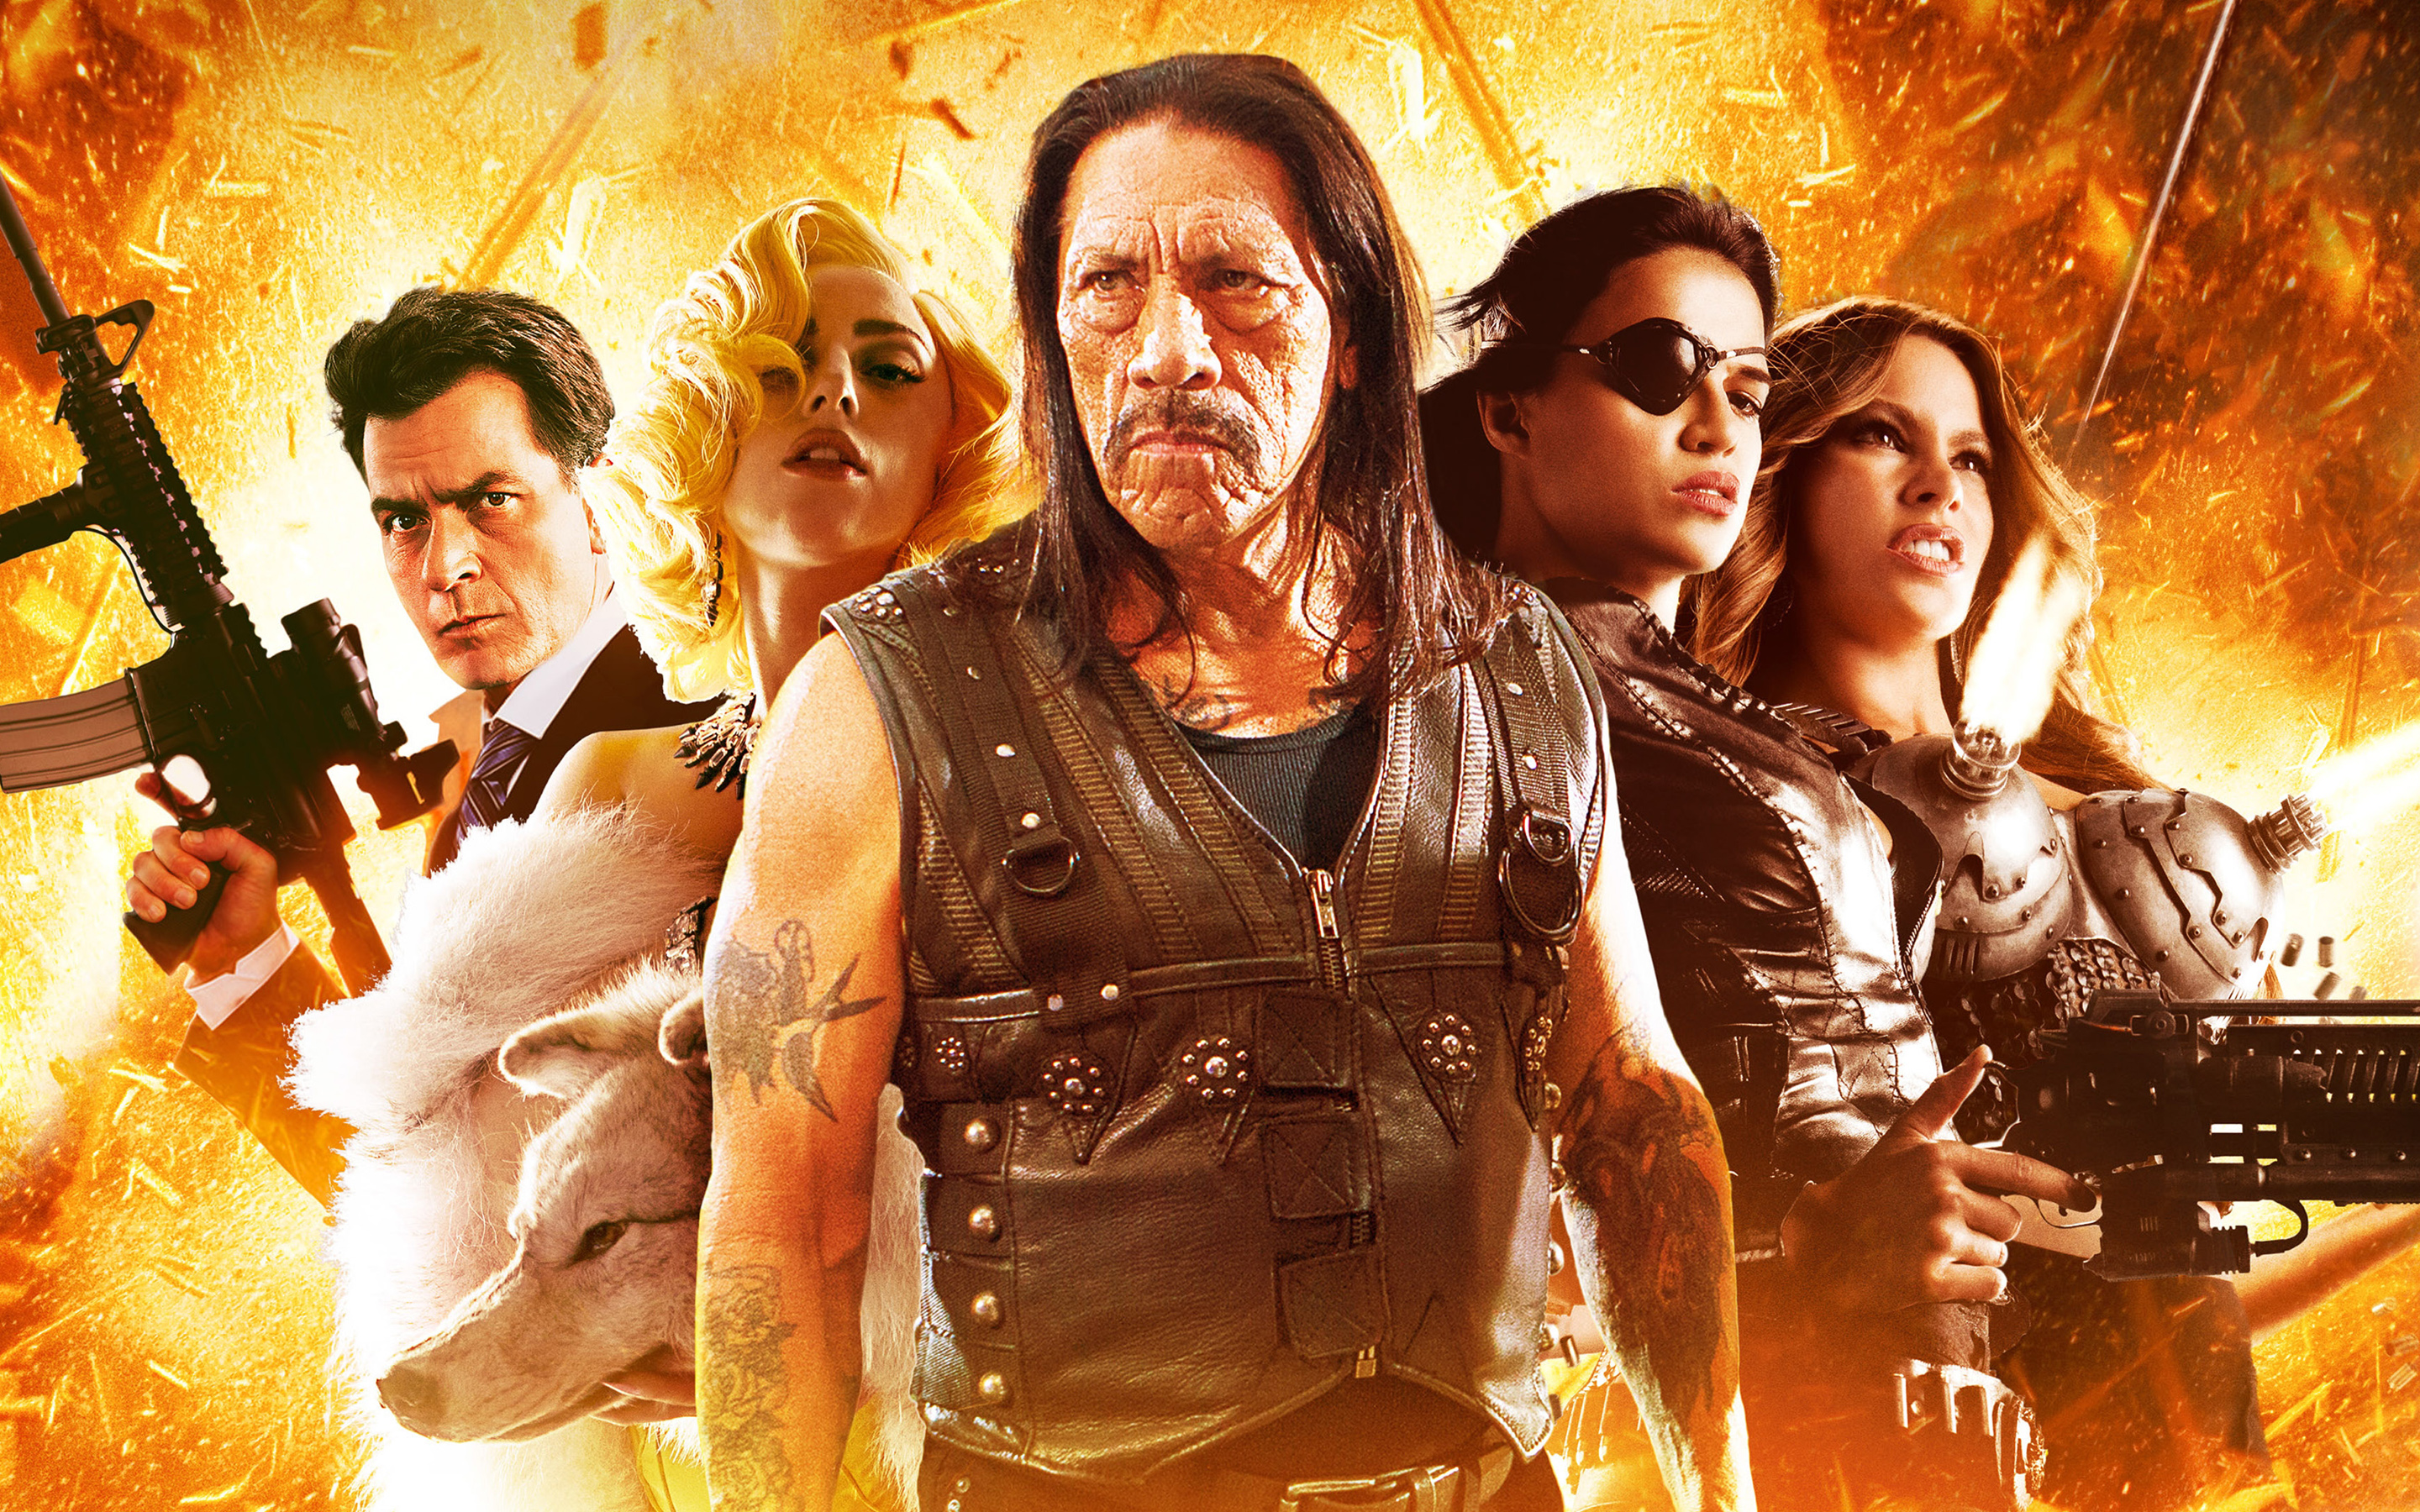 Machete Kills 2013 Movie 3111.26 Kb